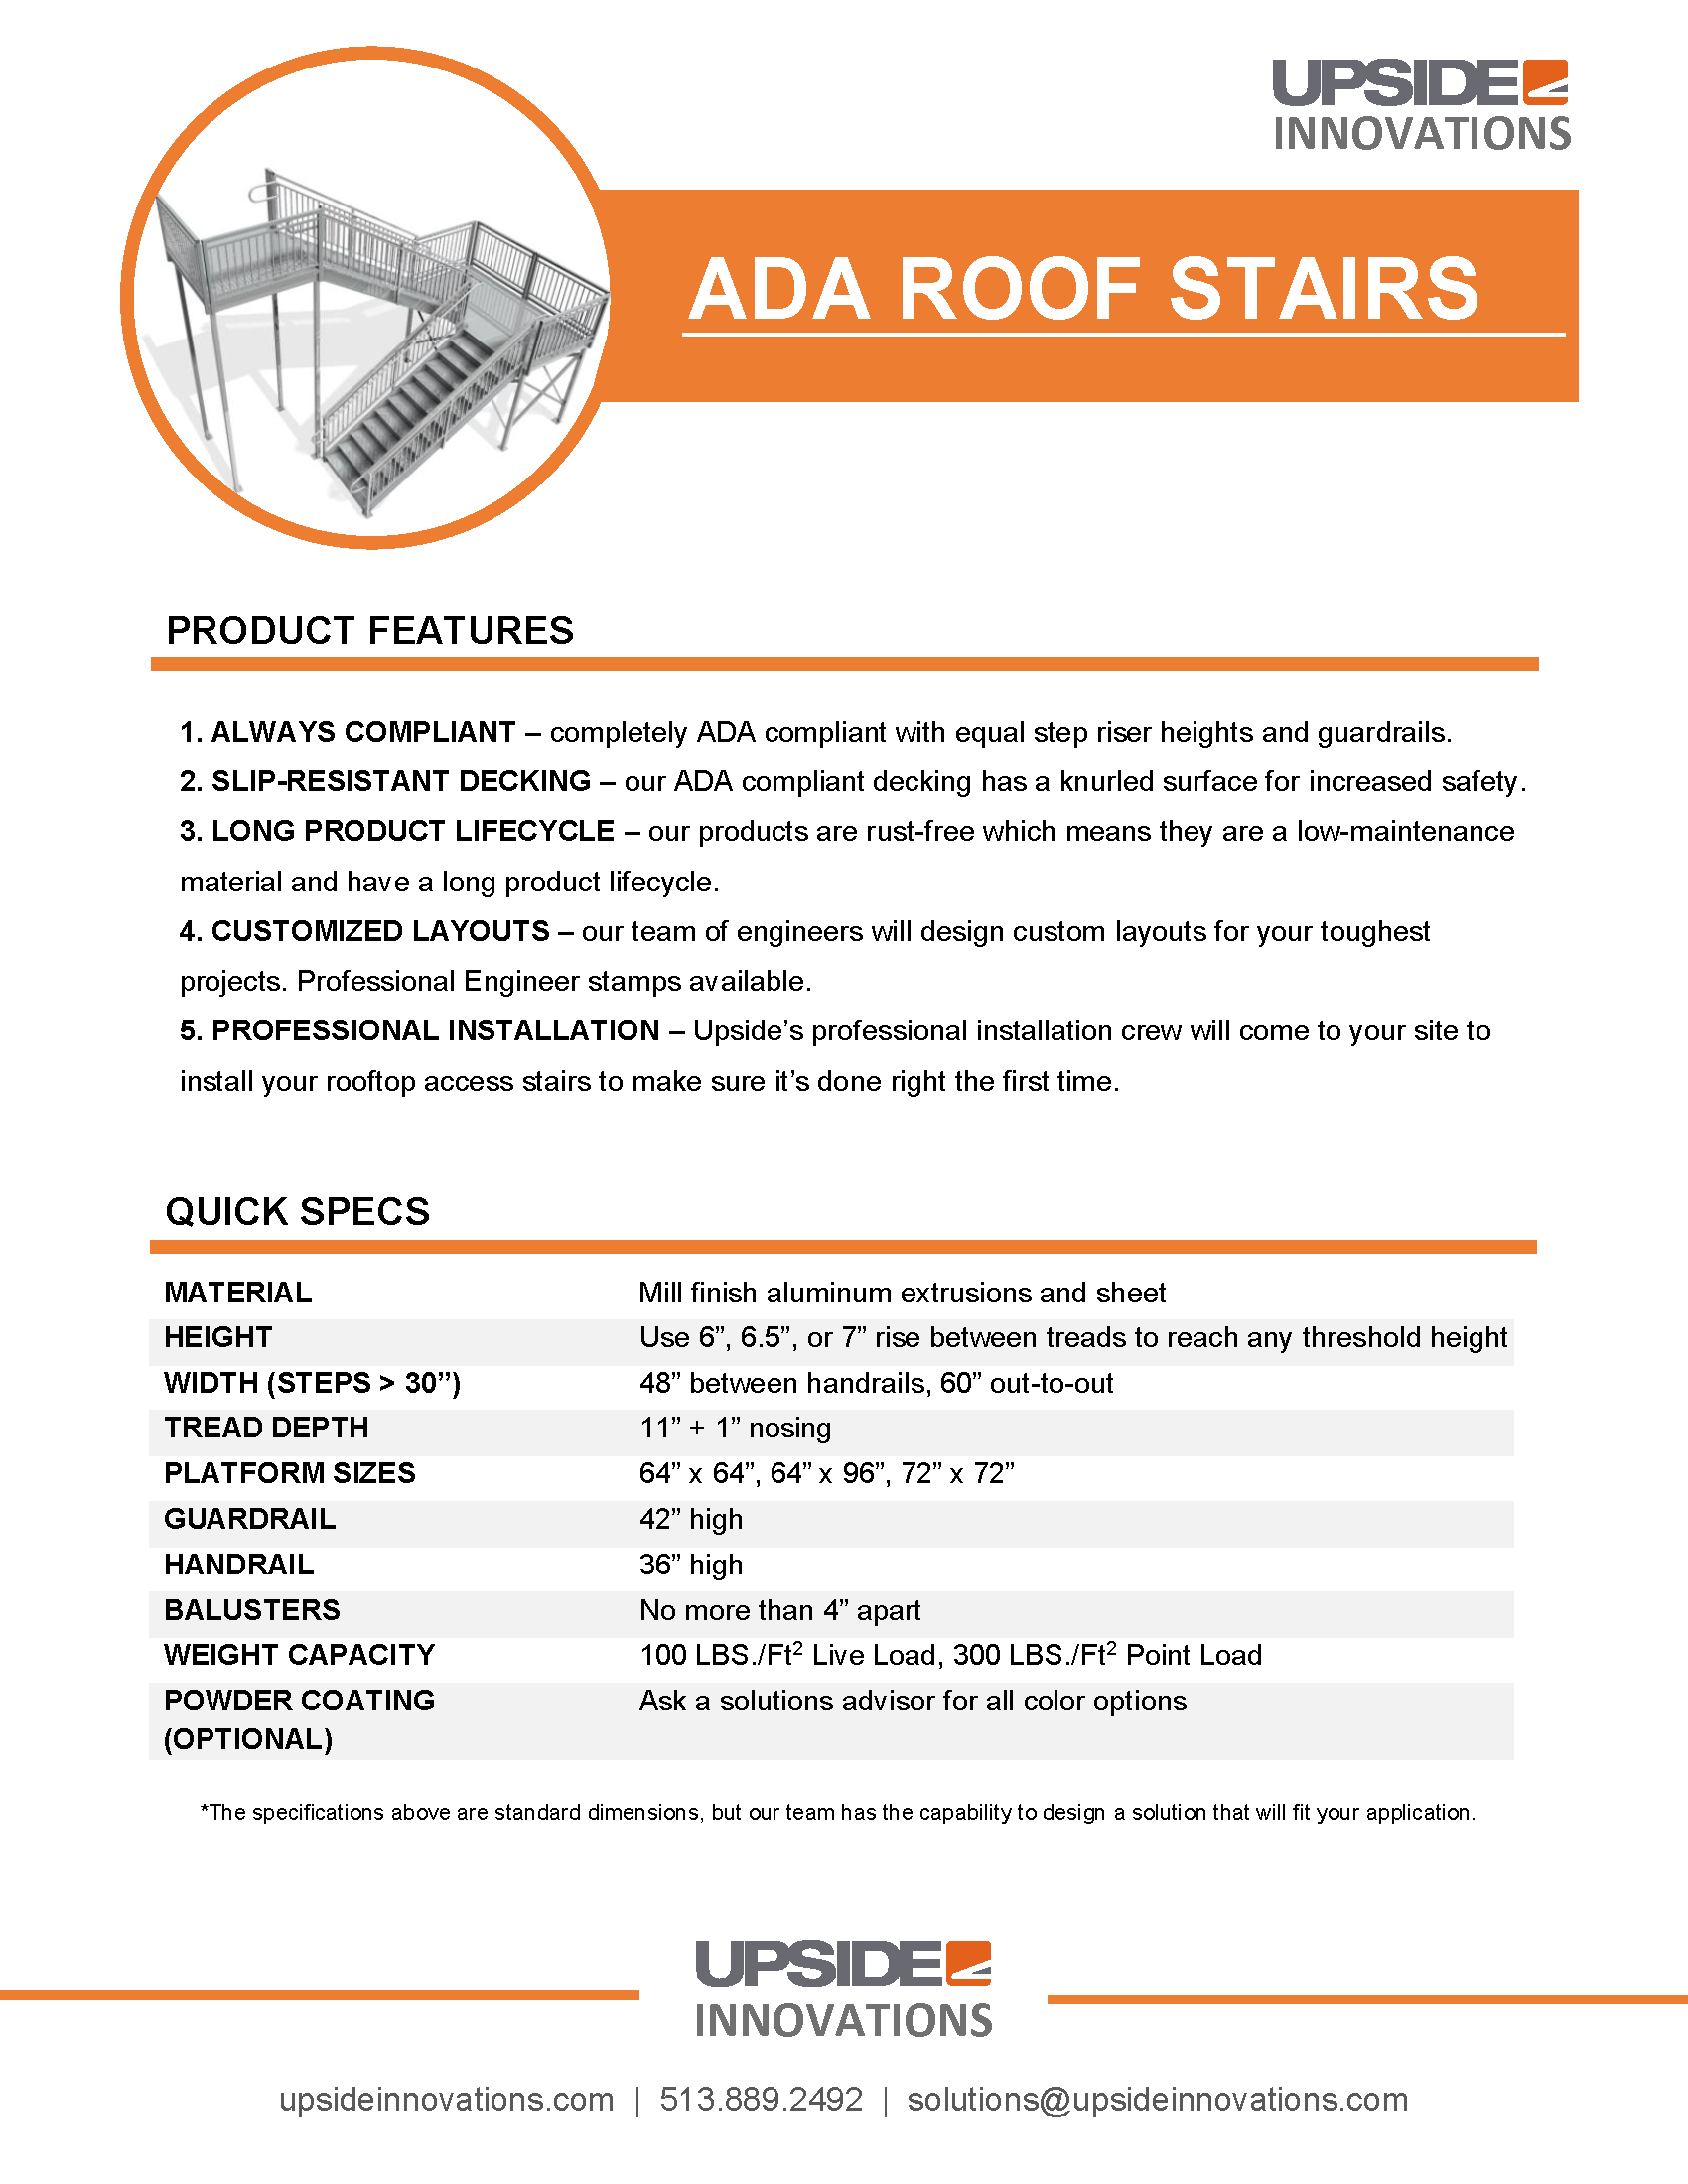 ada roof access stairs